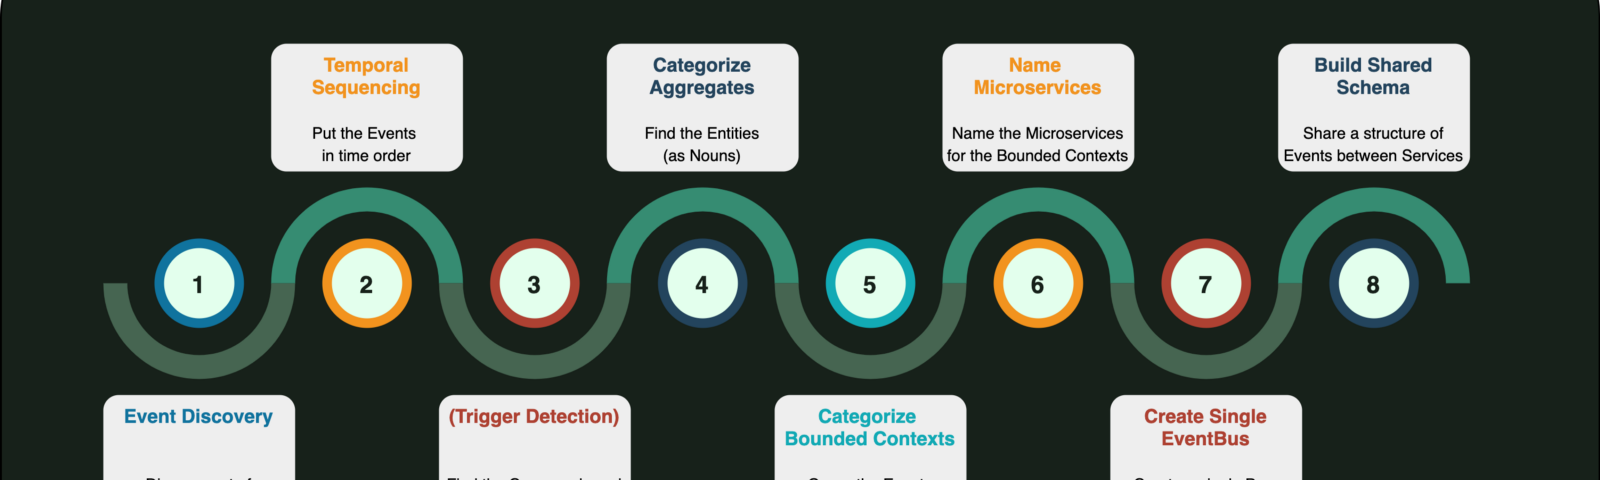 8 step flow diagram—steps discussed in article